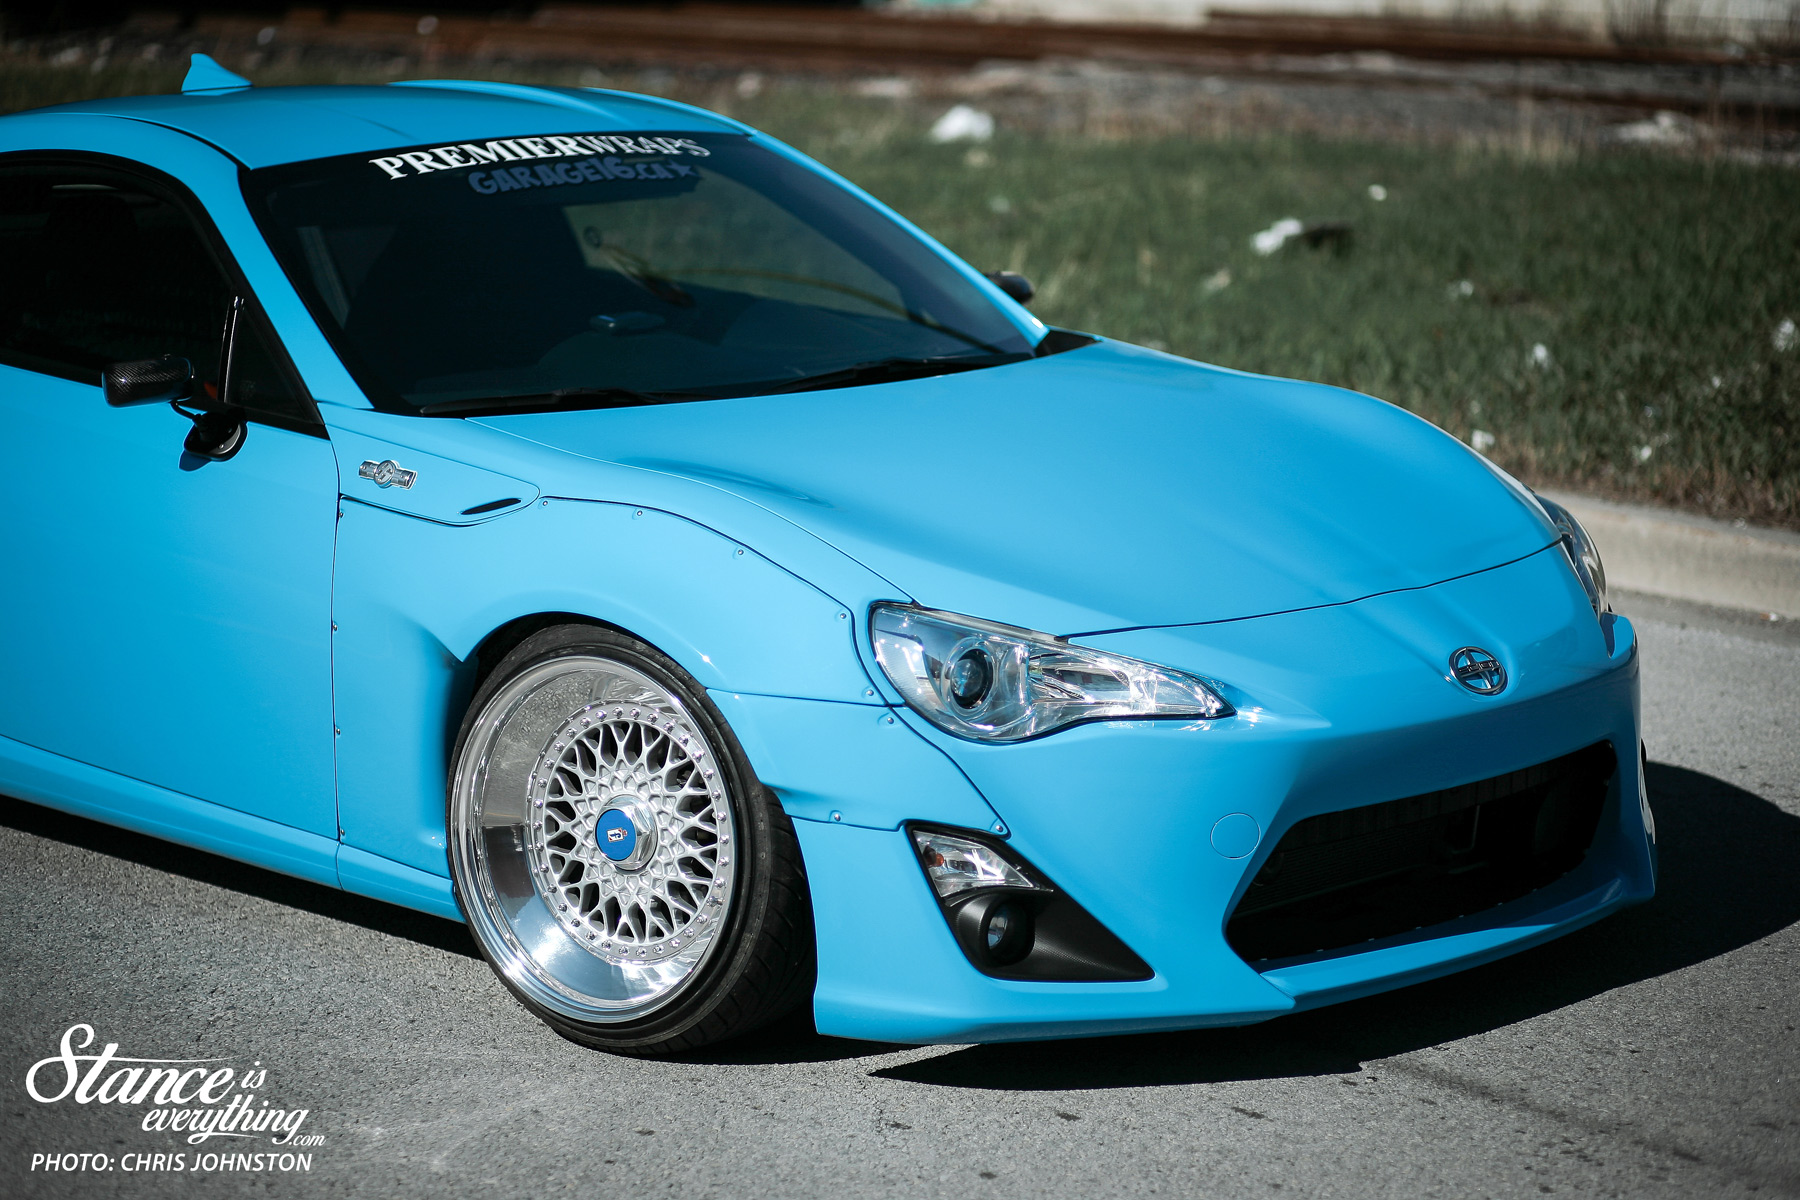 rocket-bunny-frs-bbs-cyrious-garage-bryan-costa-4